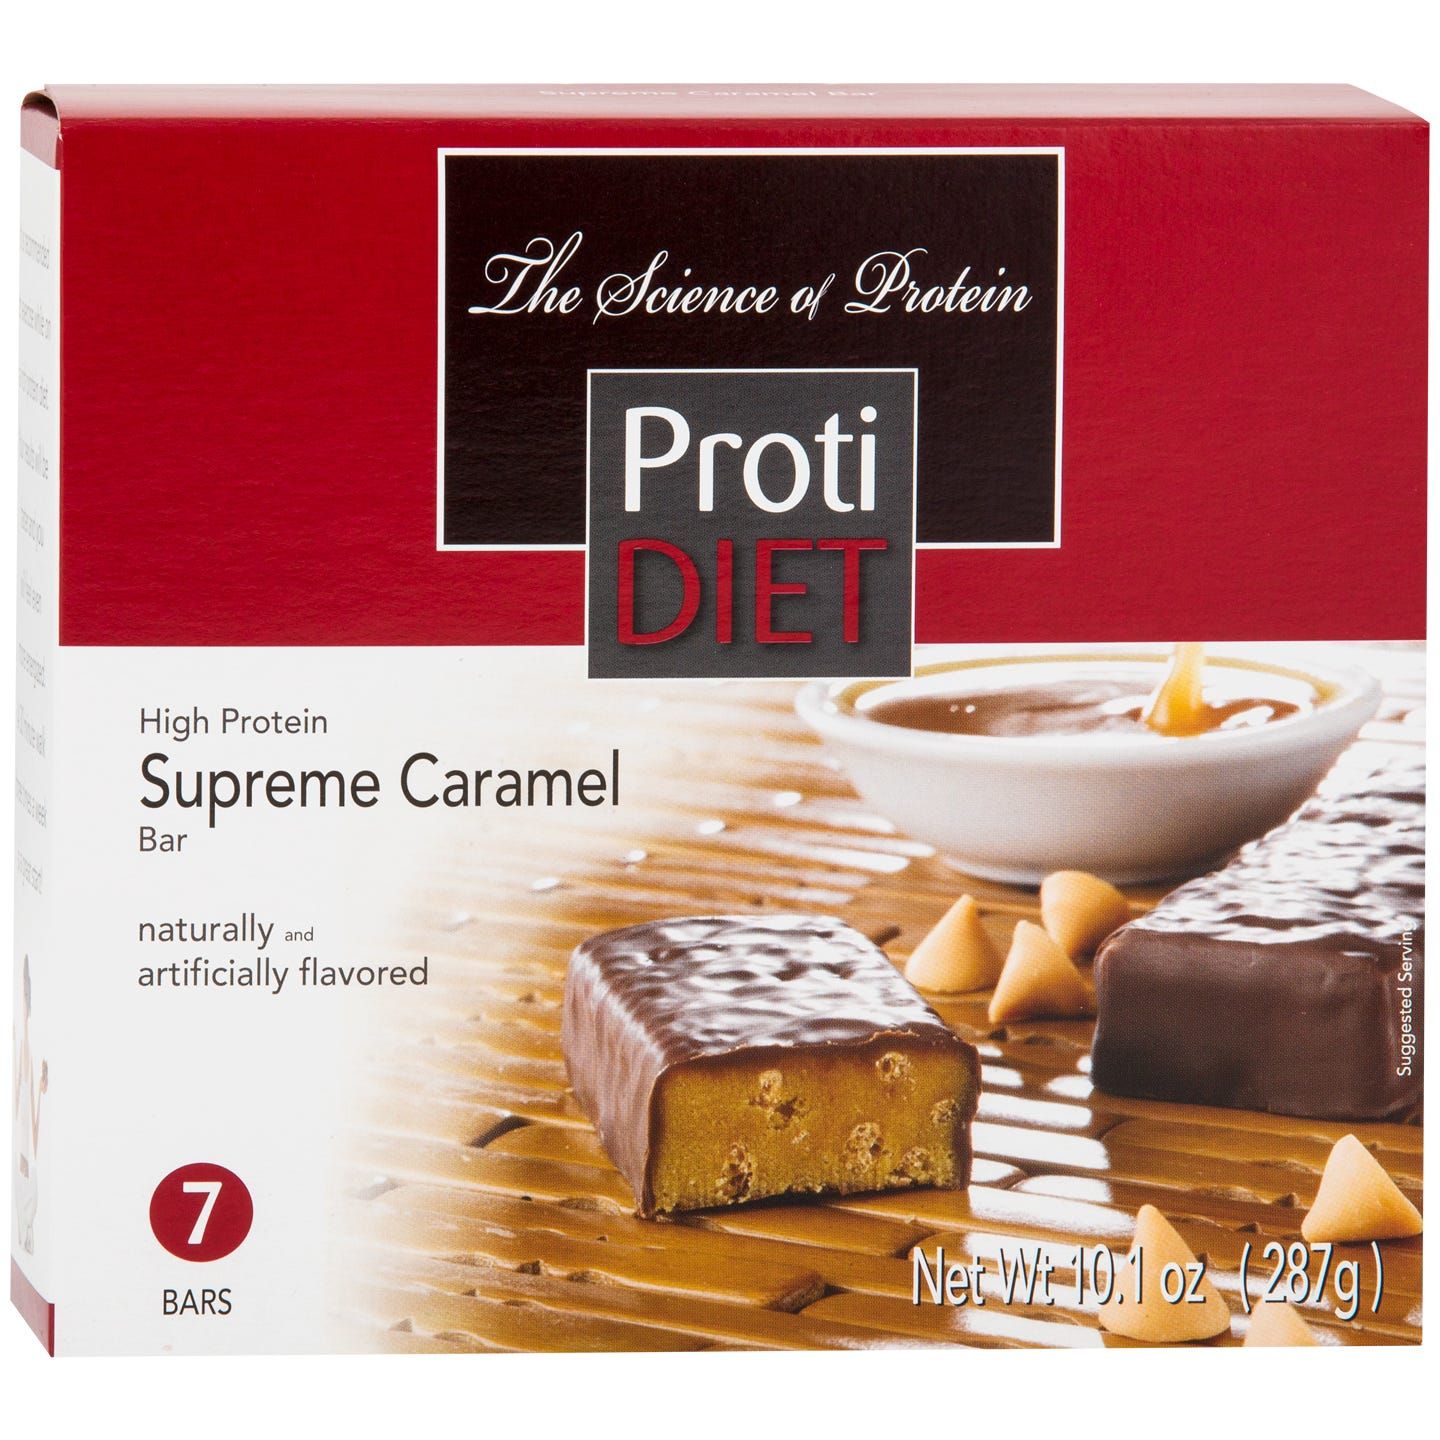 Protein Bars Caramel (7 ct) - ProtiDiet - Rapid Diet Weight Loss Products Shop